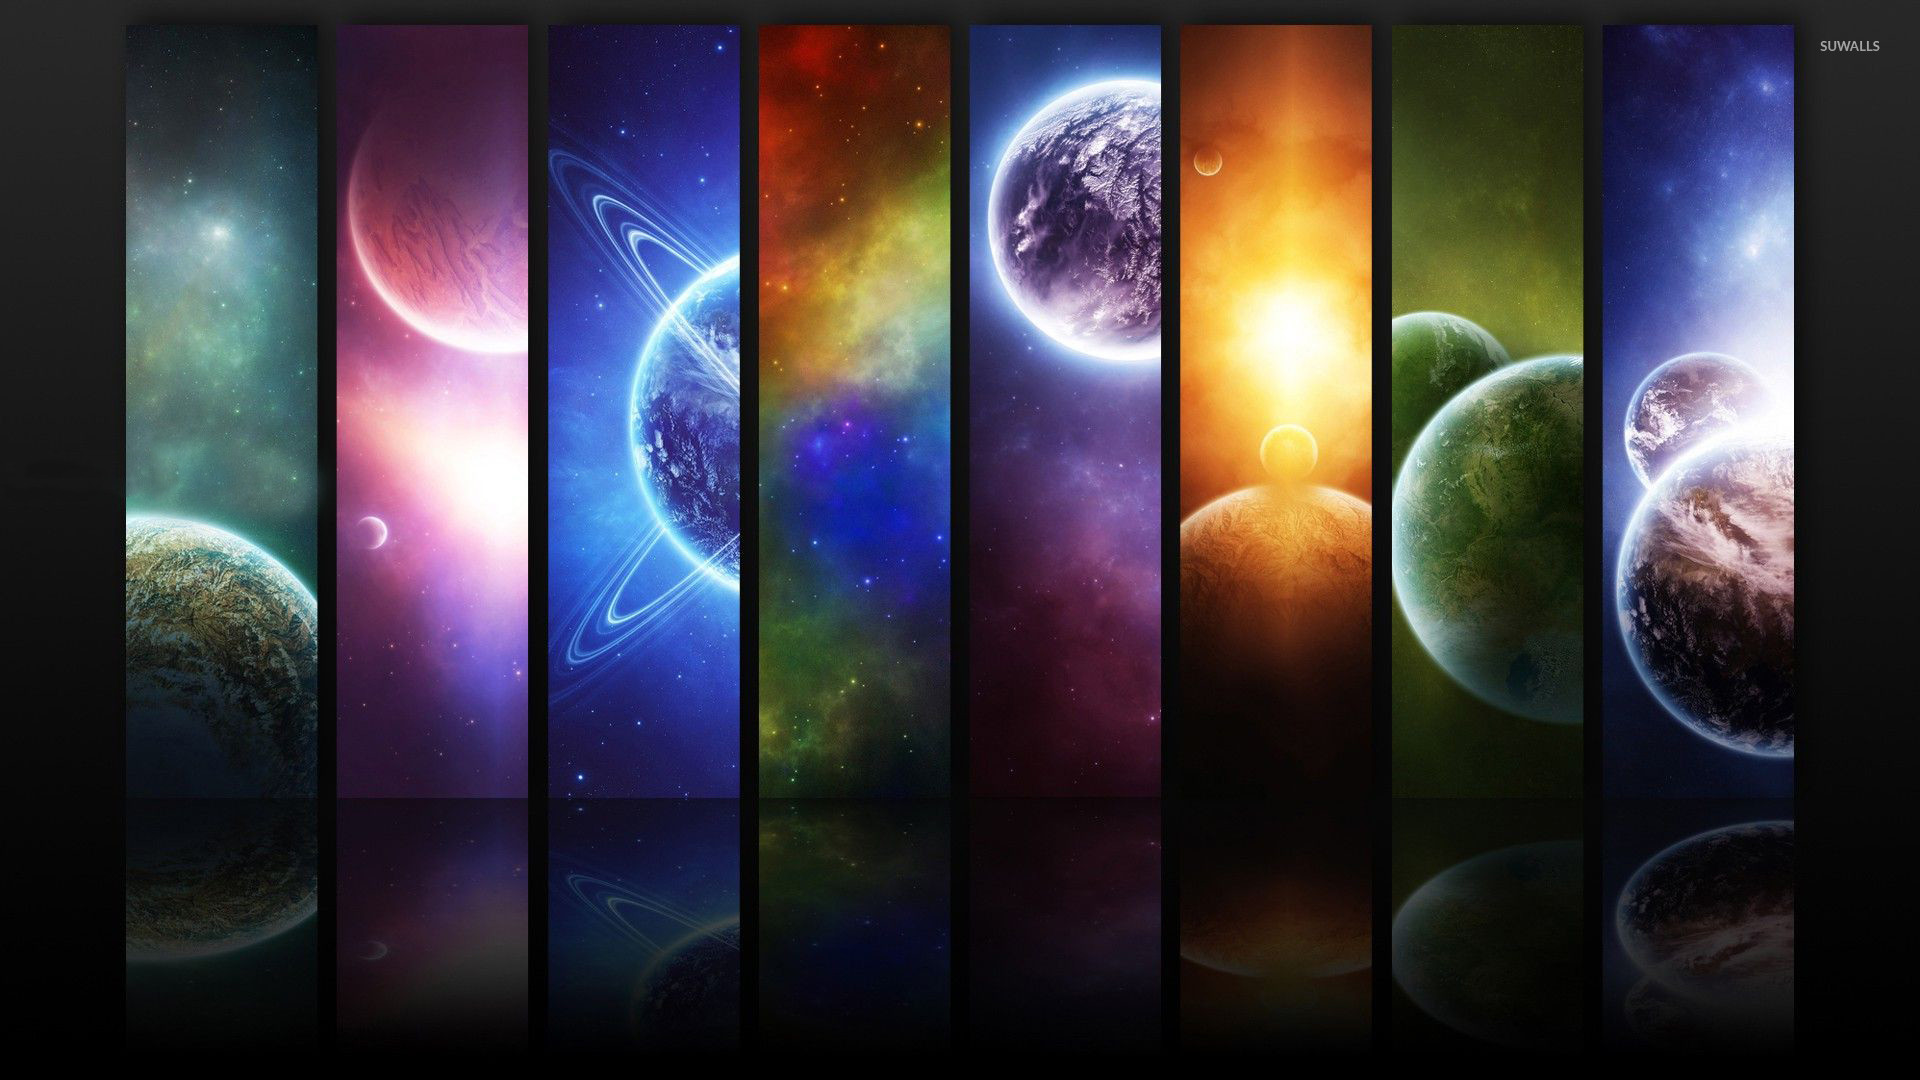 Small portions from the Universe wallpaper jpg